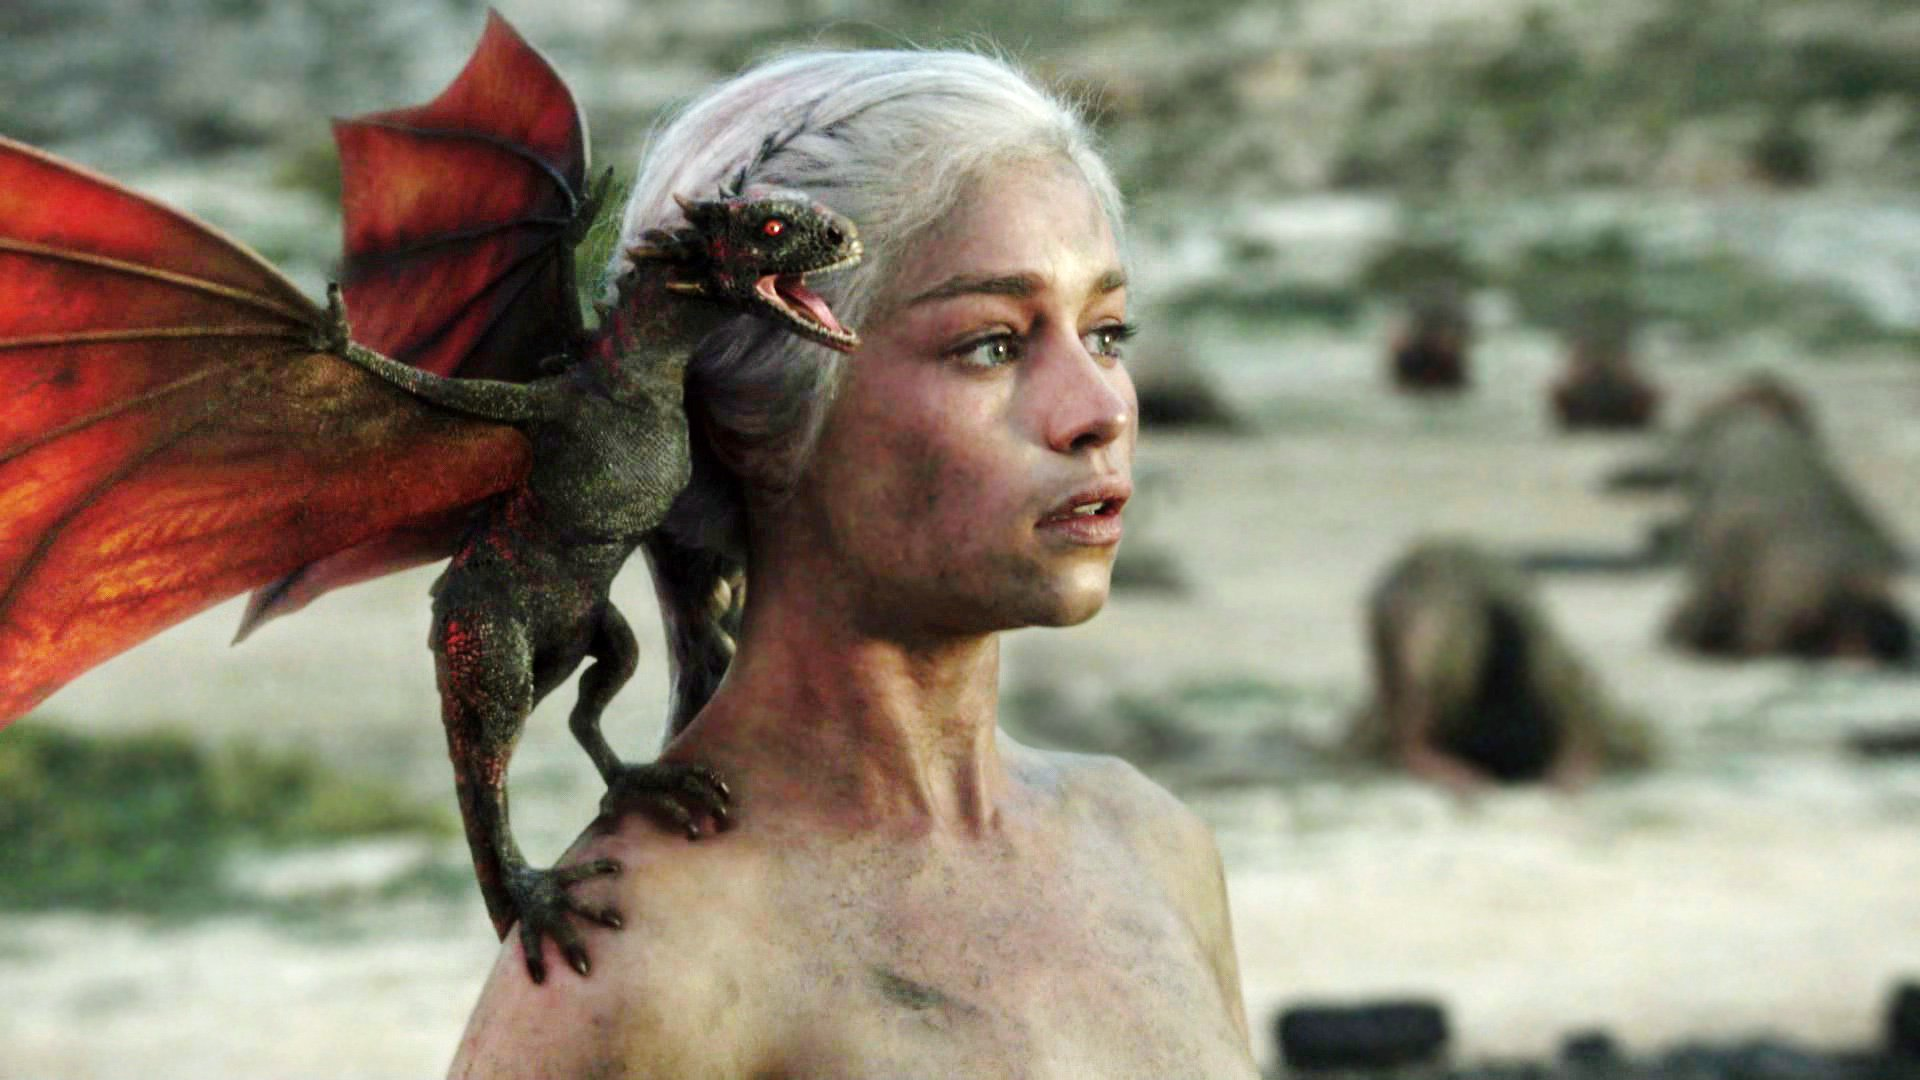 daenerys-dragon-gameofthrones-2.jpg